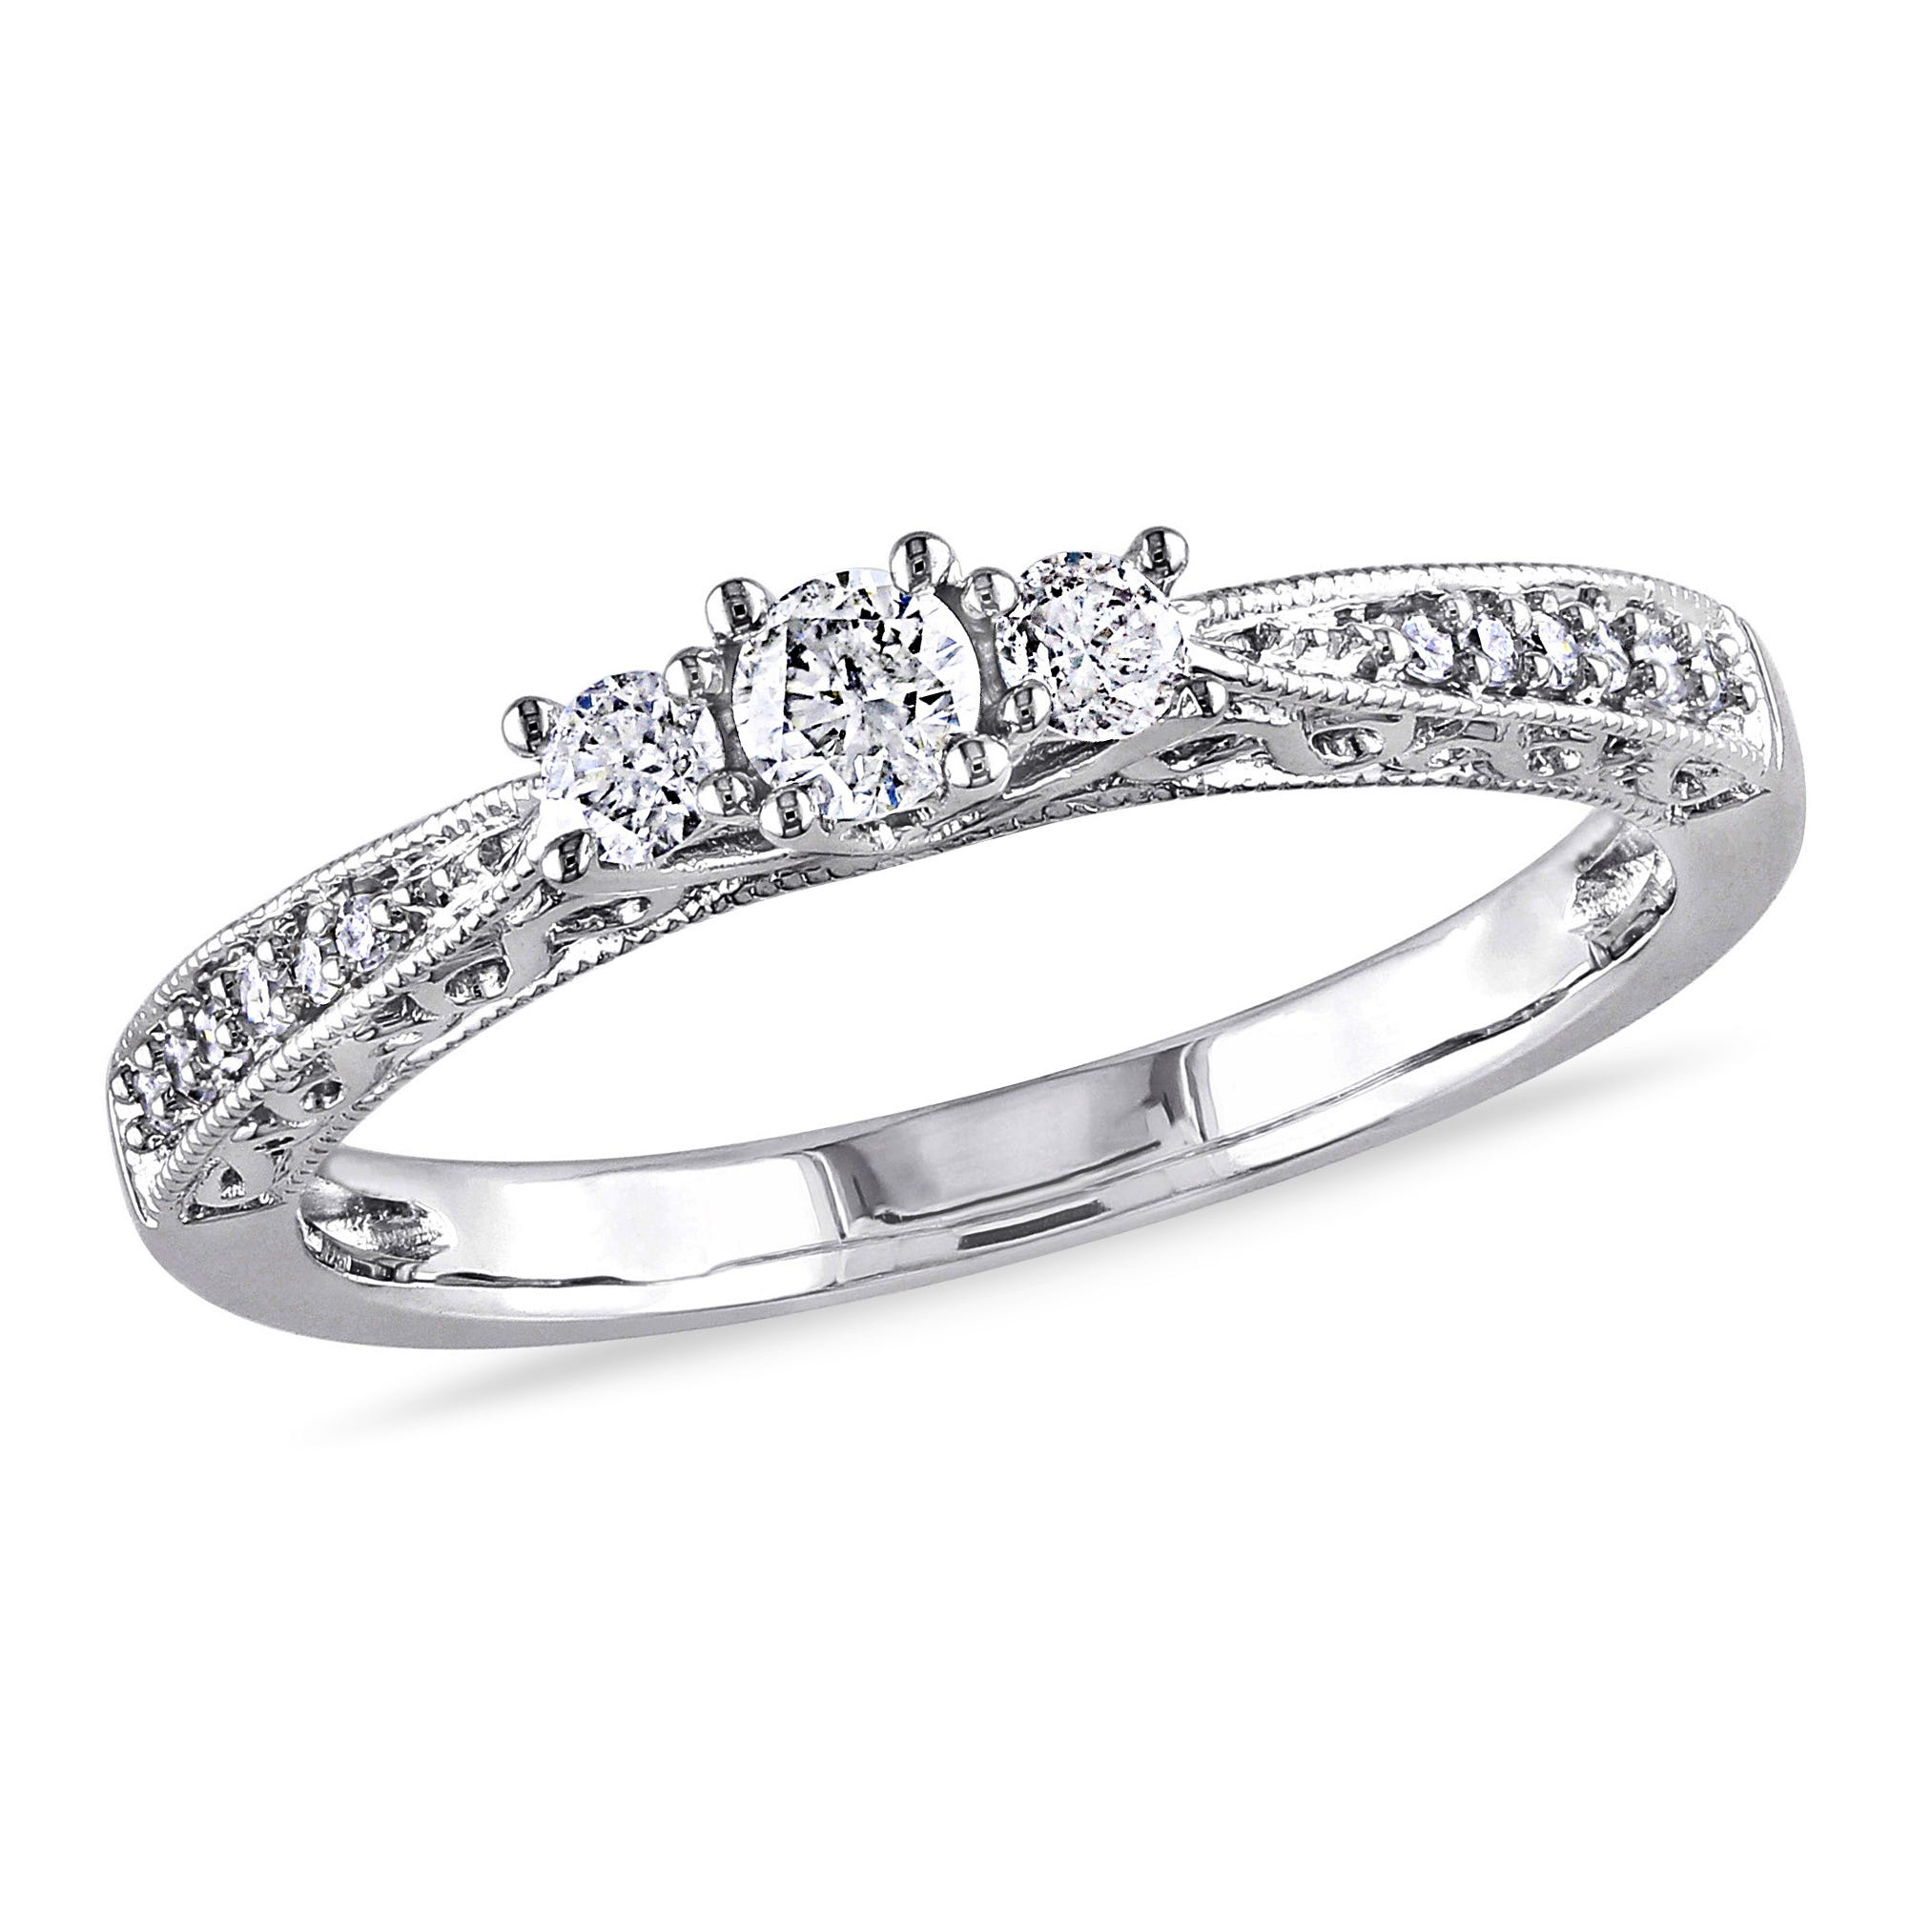 3-Stone Round Cut Diamond Promise Ring 1/4ctw. in 10k White Gold